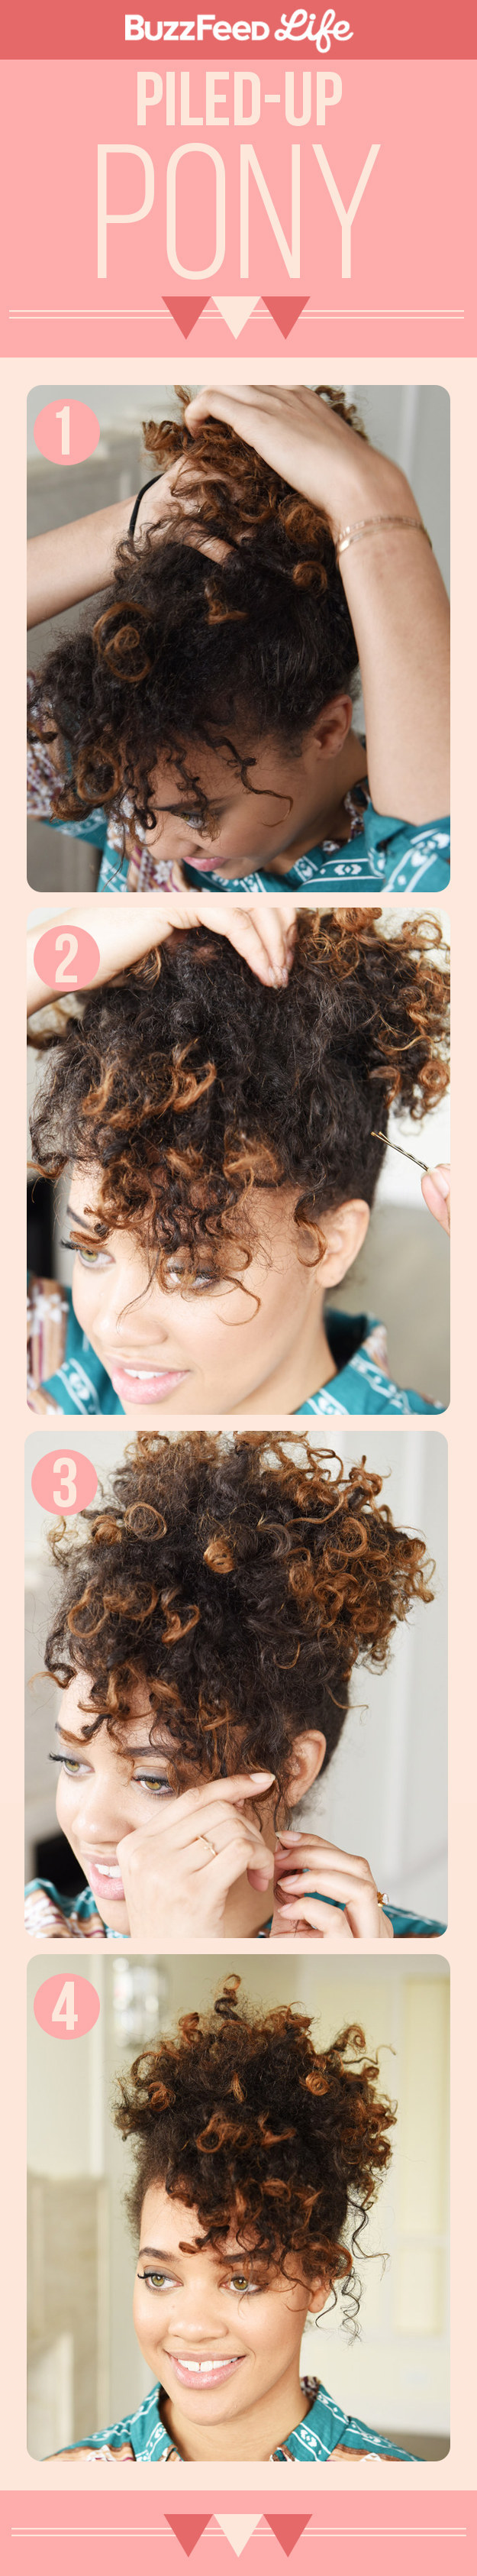 Fine 26 Incredible Hairstyles You Can Learn In 10 Steps Or Less Short Hairstyles Gunalazisus